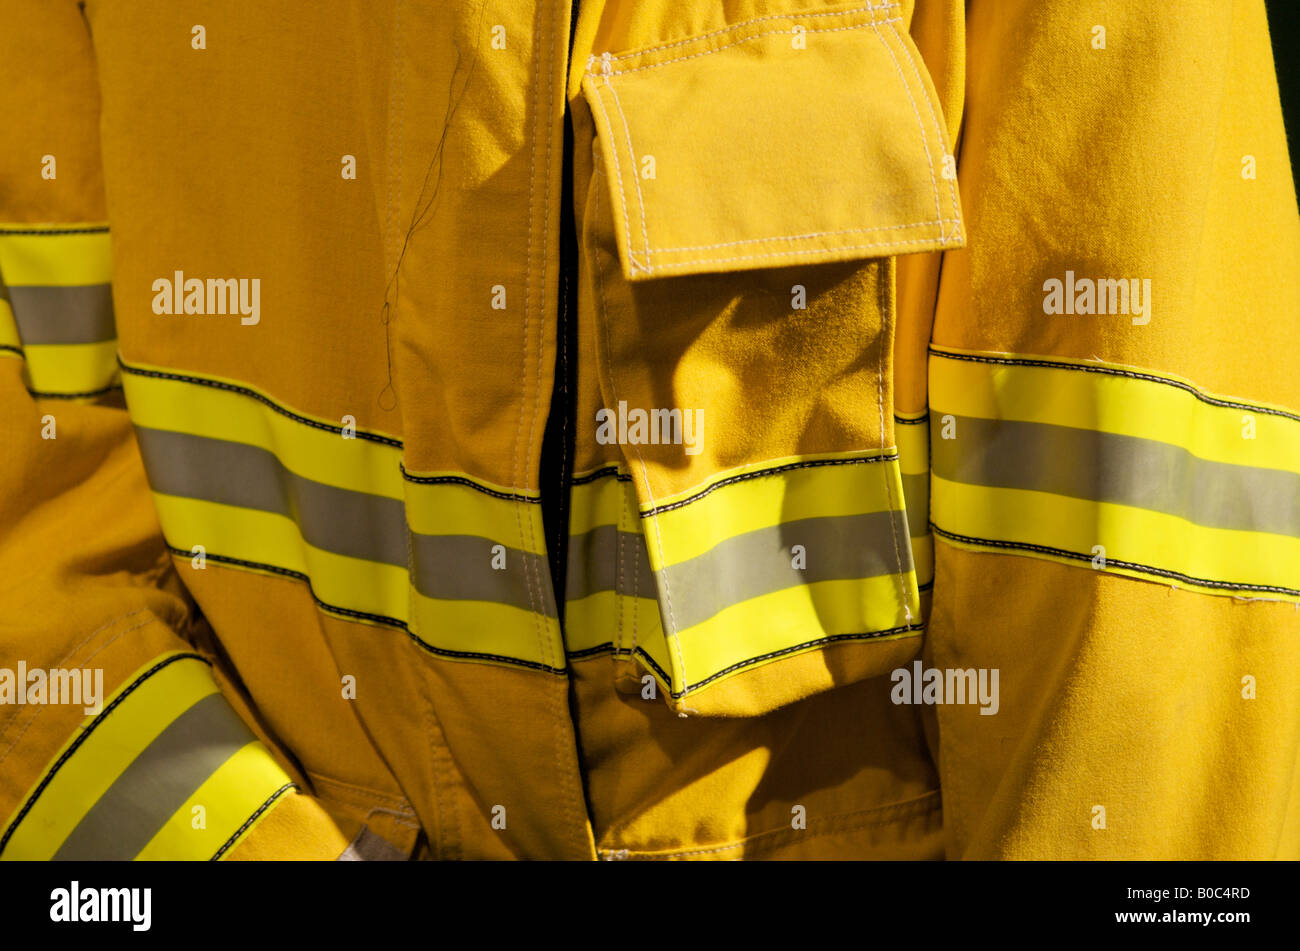 Close up view of reflective strip on a Nomex wildland figherfigher's jacket. - Stock Image